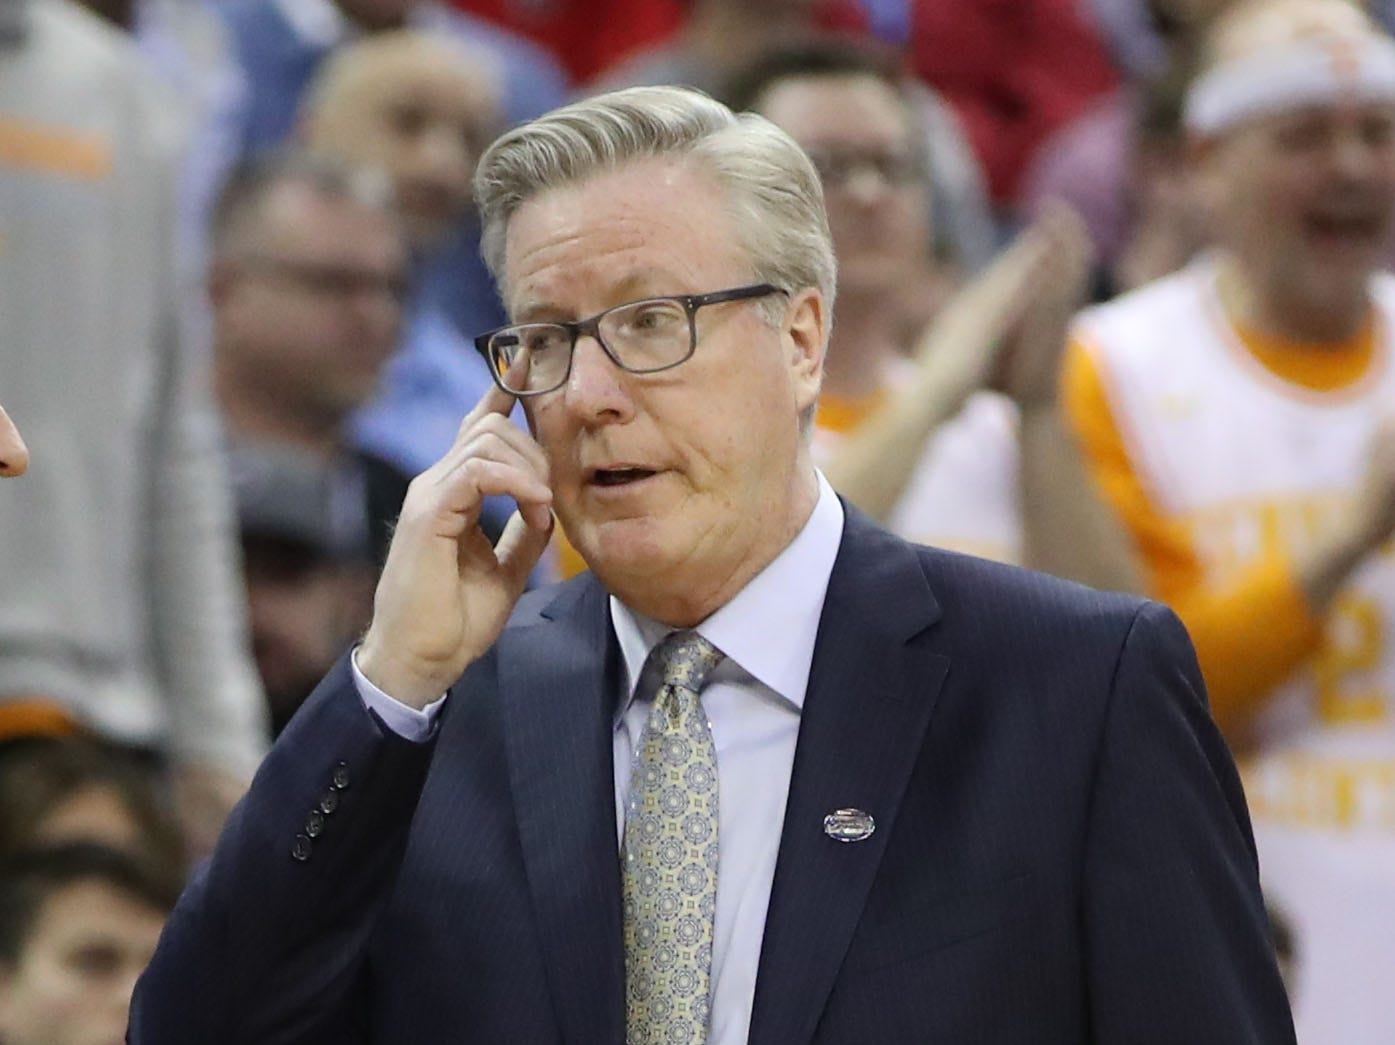 Iowa Hawkeyes head coach Fran McCaffery reacts to play in overtime against the Tennessee Volunteers in the second round of the 2019 NCAA Tournament at Nationwide Arena.